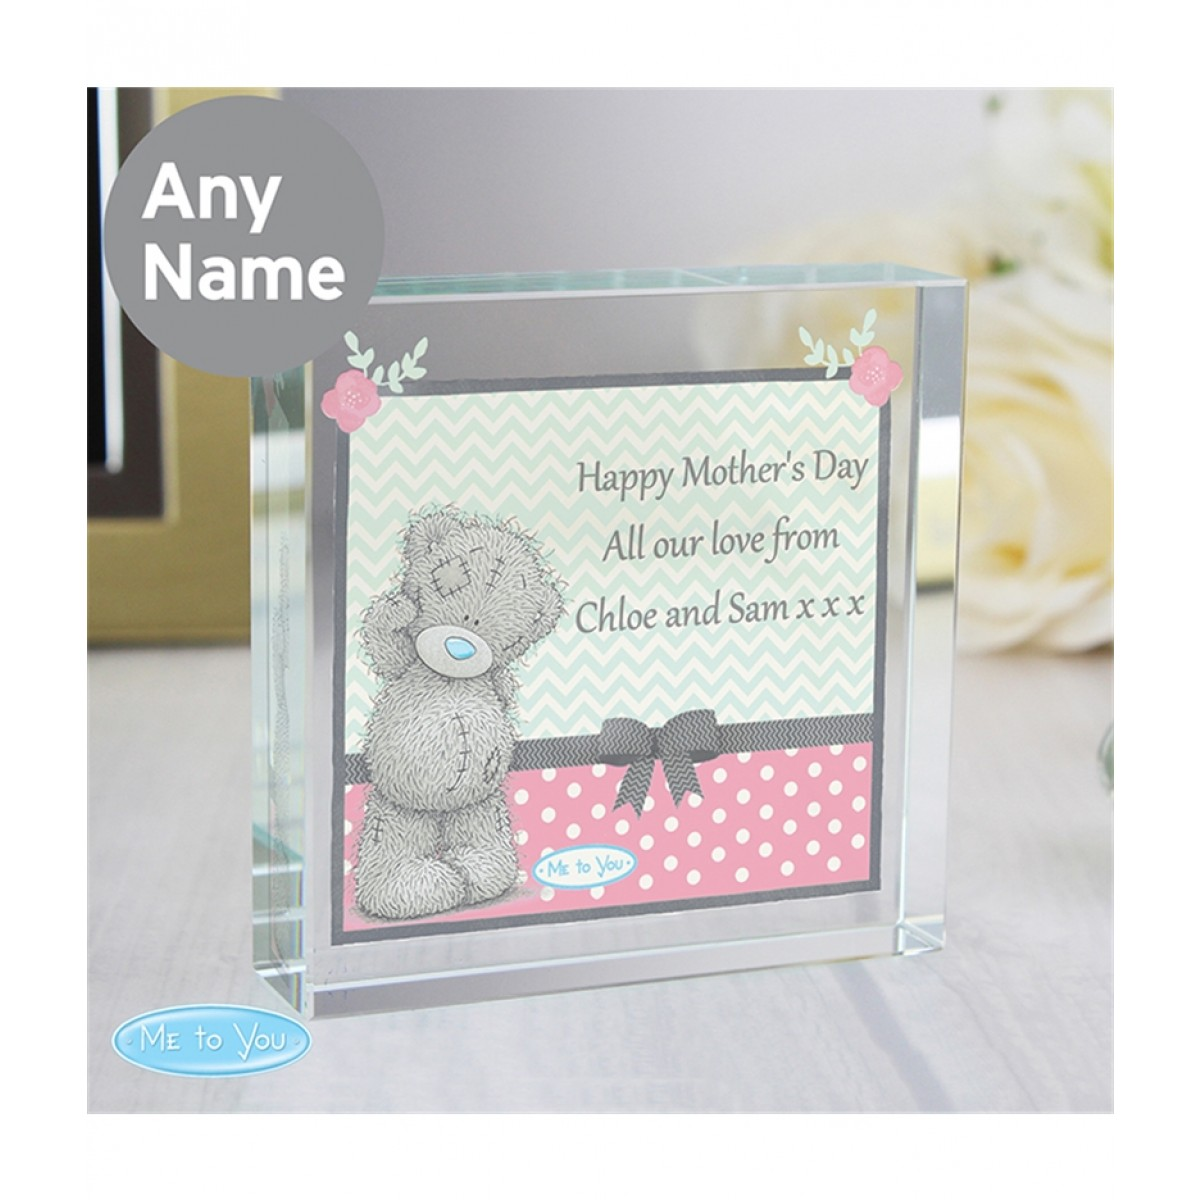 Me to You Pastel Belle Girls Gifts | Pressies 4 Princesses